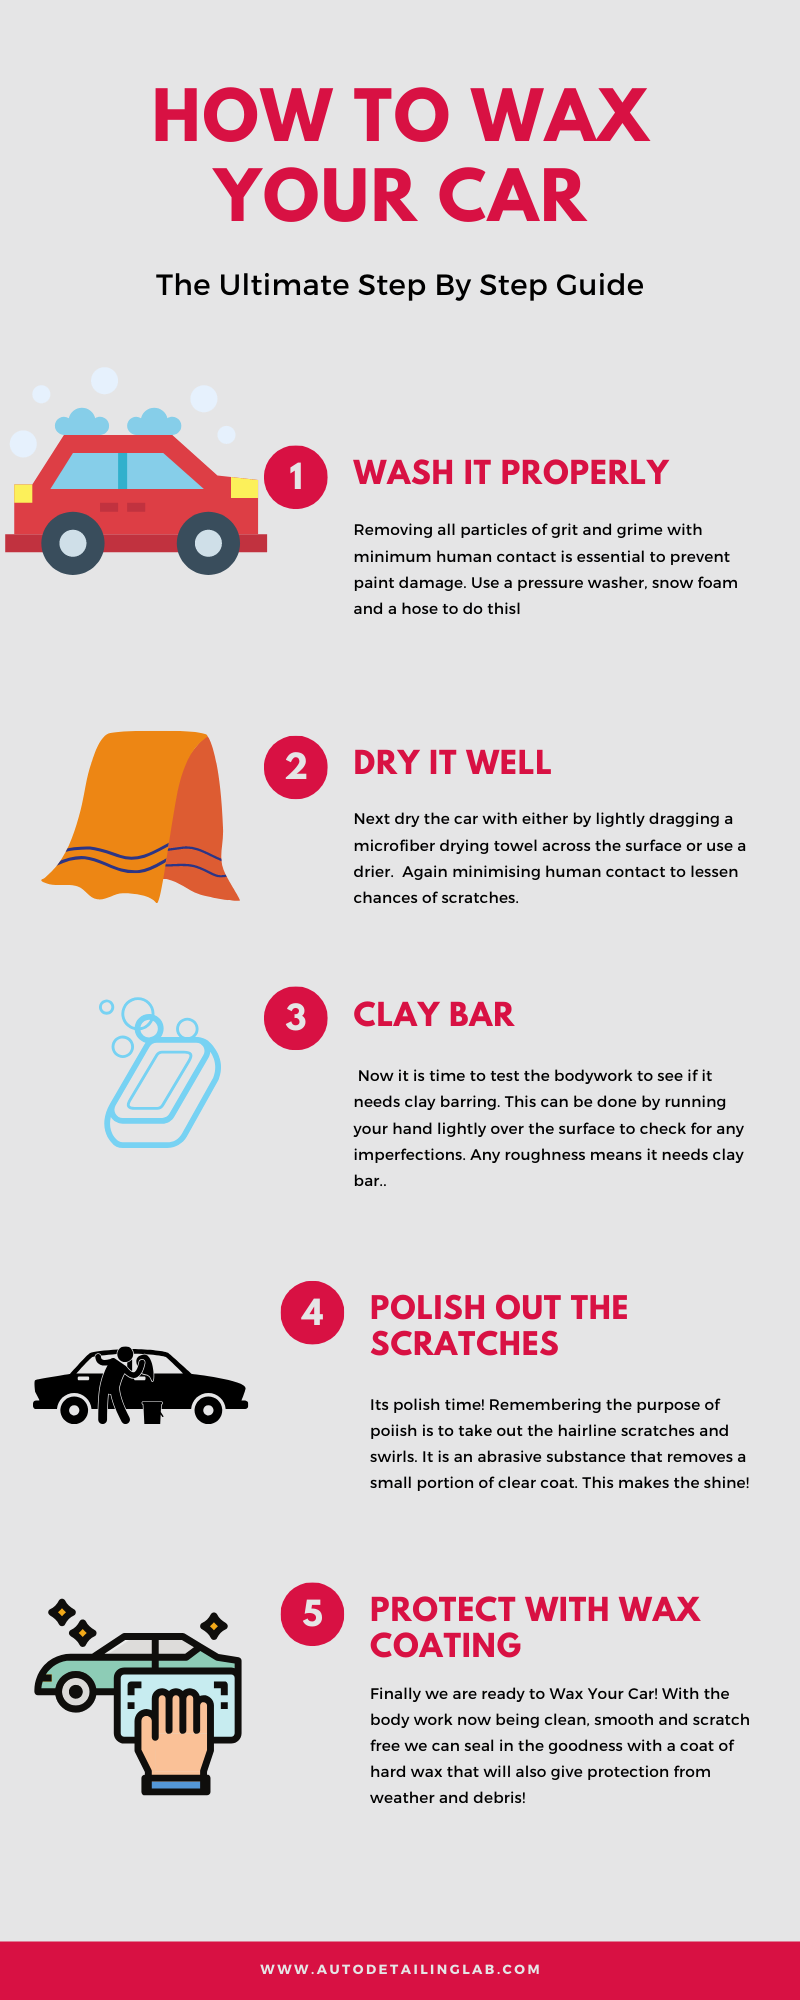 An infor graphic explaining the steps in the How To Wax Your Car Ultimate Guide